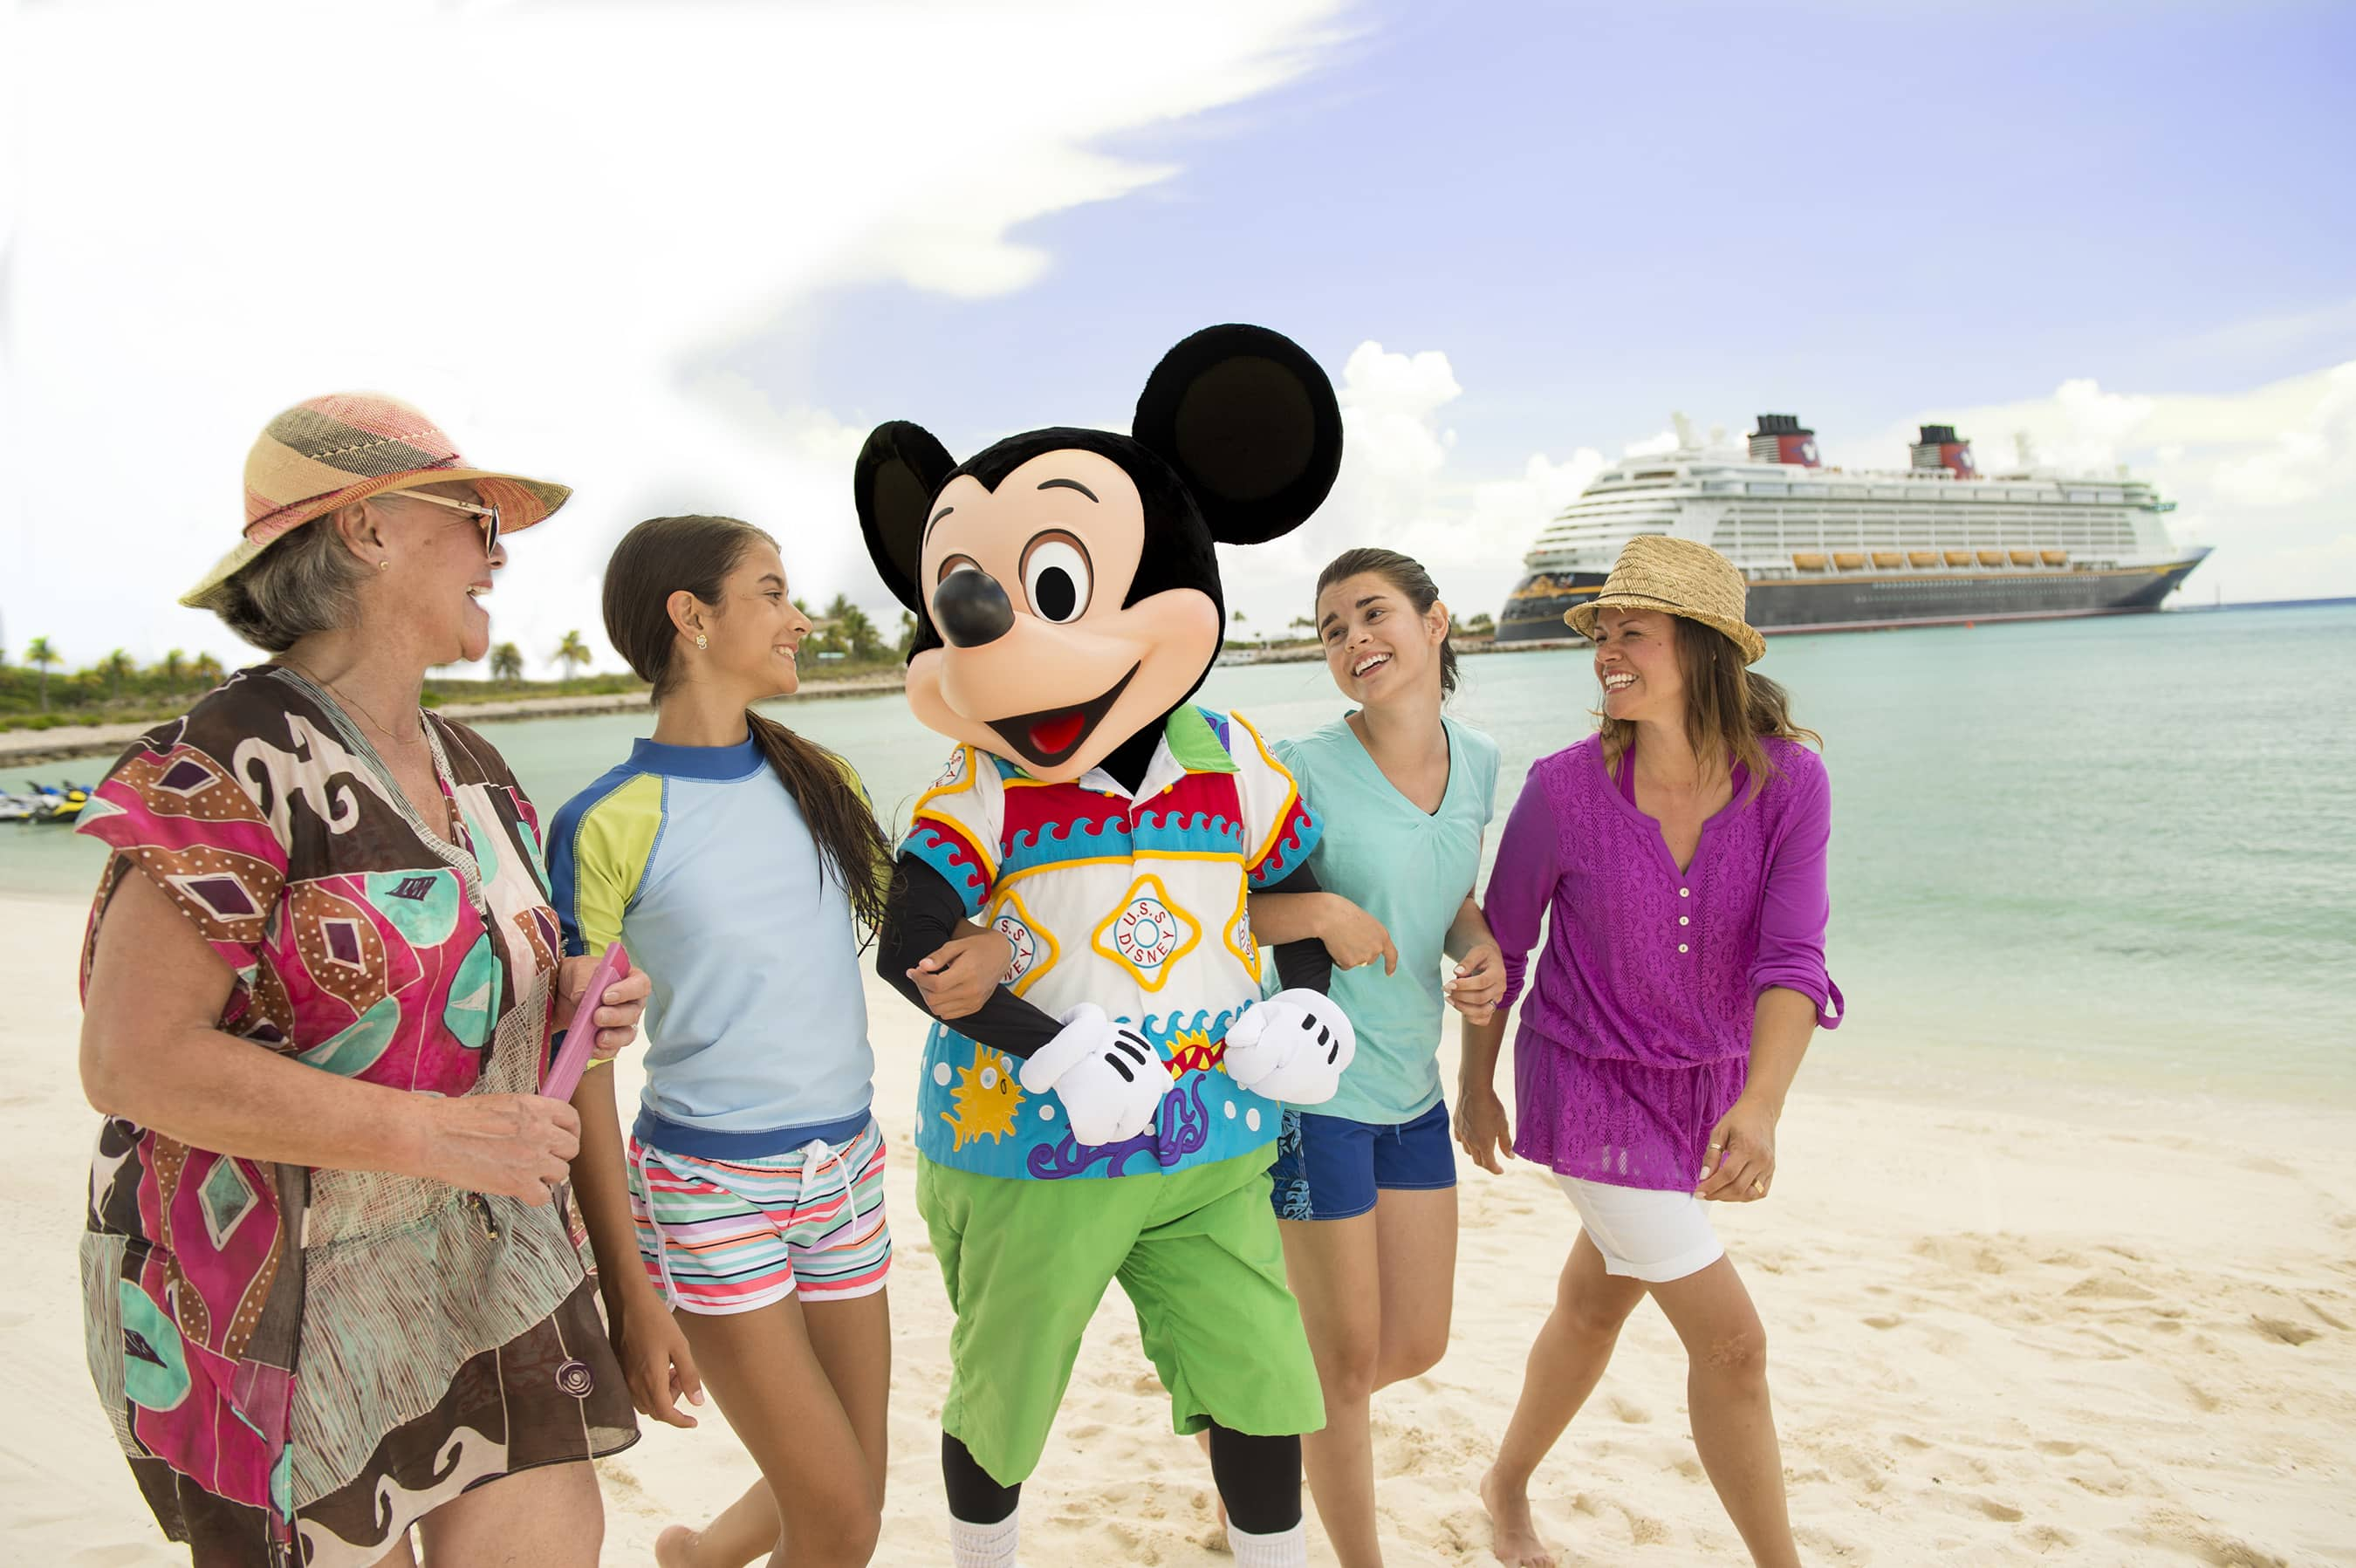 Opportunities for fun for all ages abound on Castaway Cay